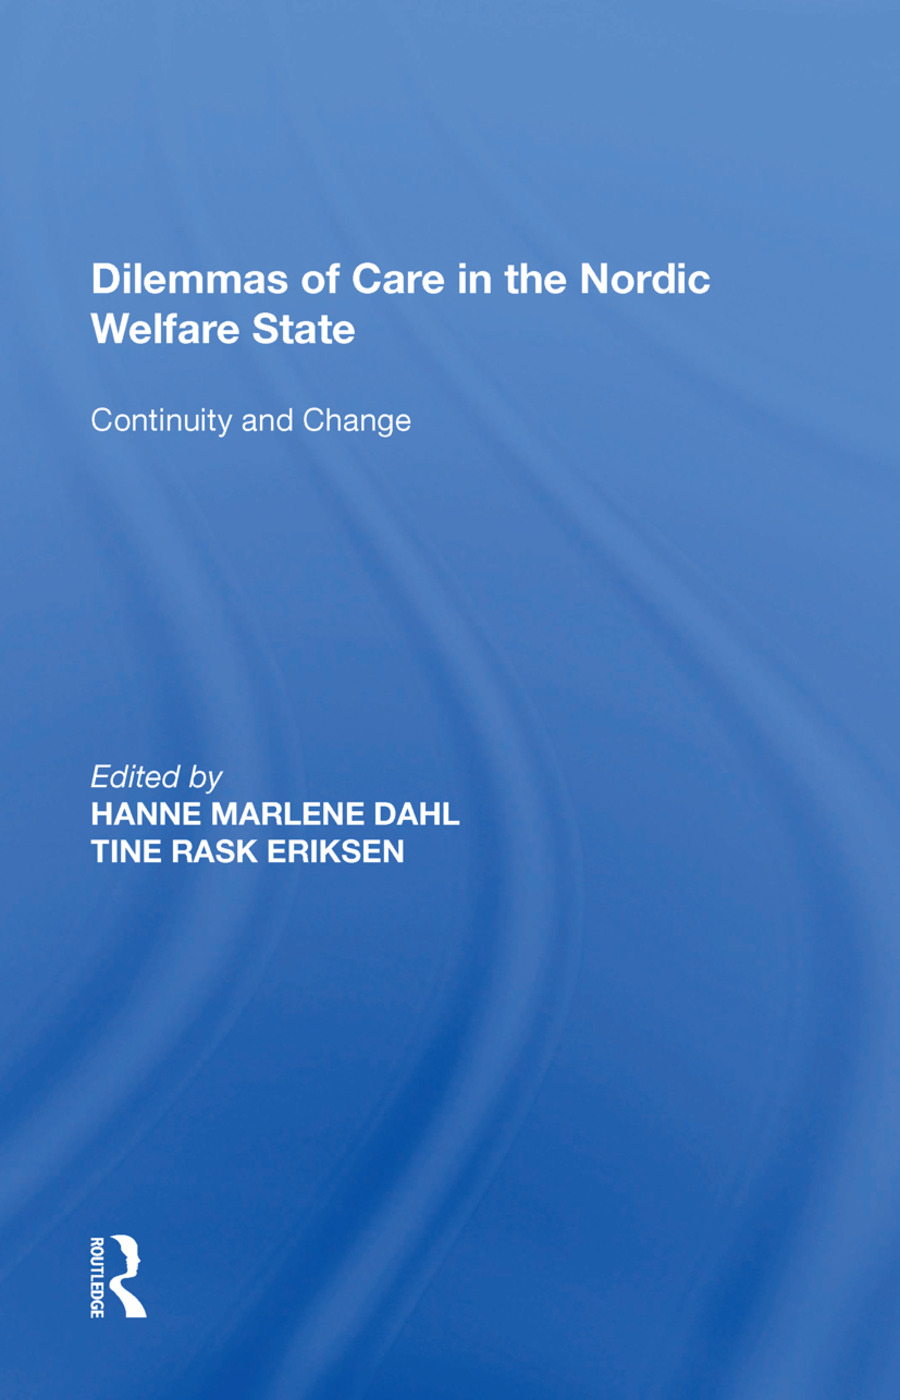 Dilemmas of Care in the Nordic Welfare State